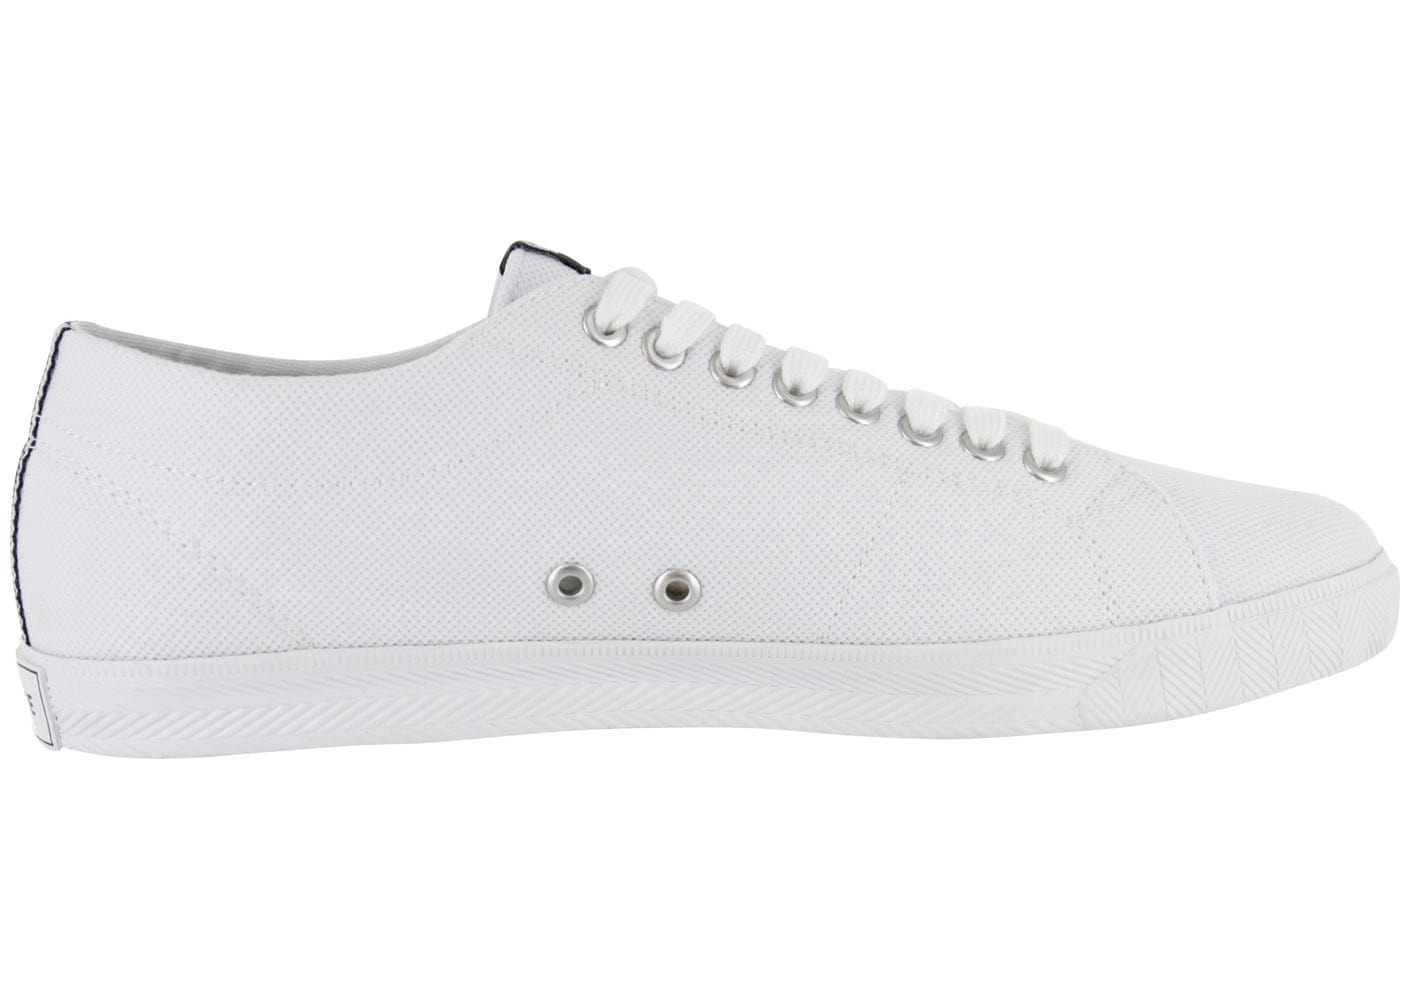 Lacoste Chaussure Femme Chaussure Lacoste Toile qgw8XYqx1